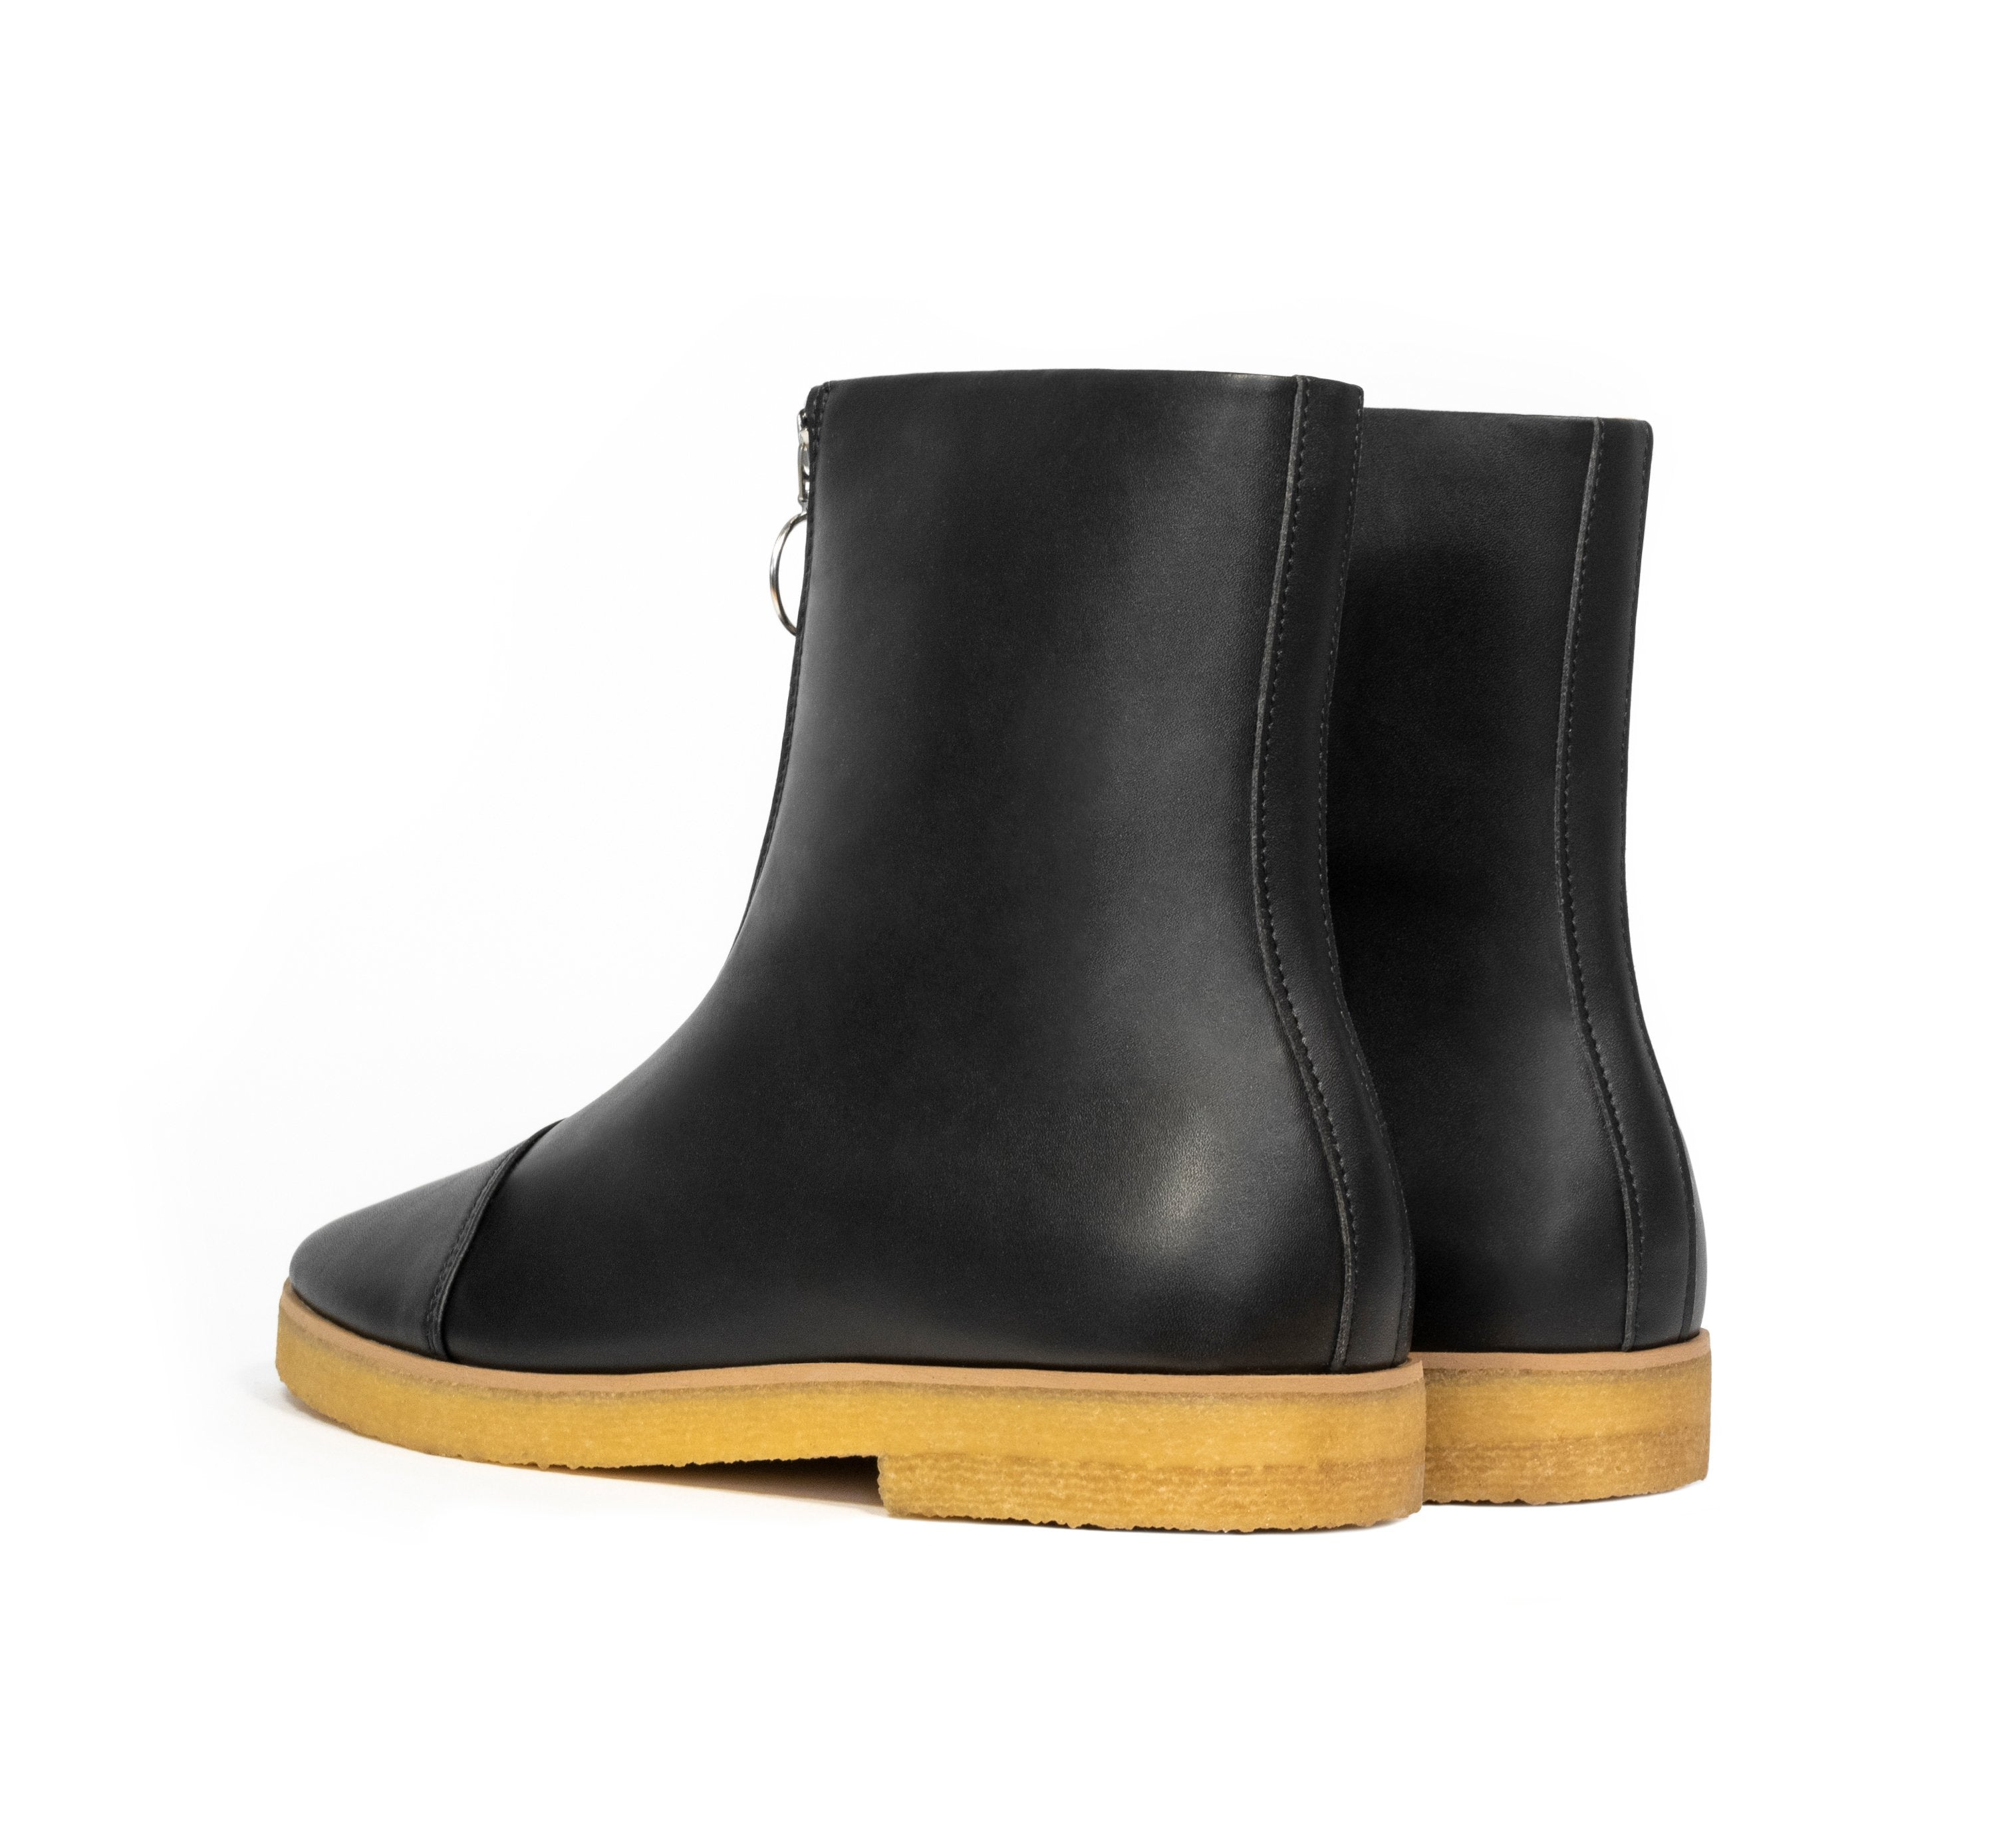 Black vegan leather boot with frontal zip, almond toe, natural rubber crepe sole.